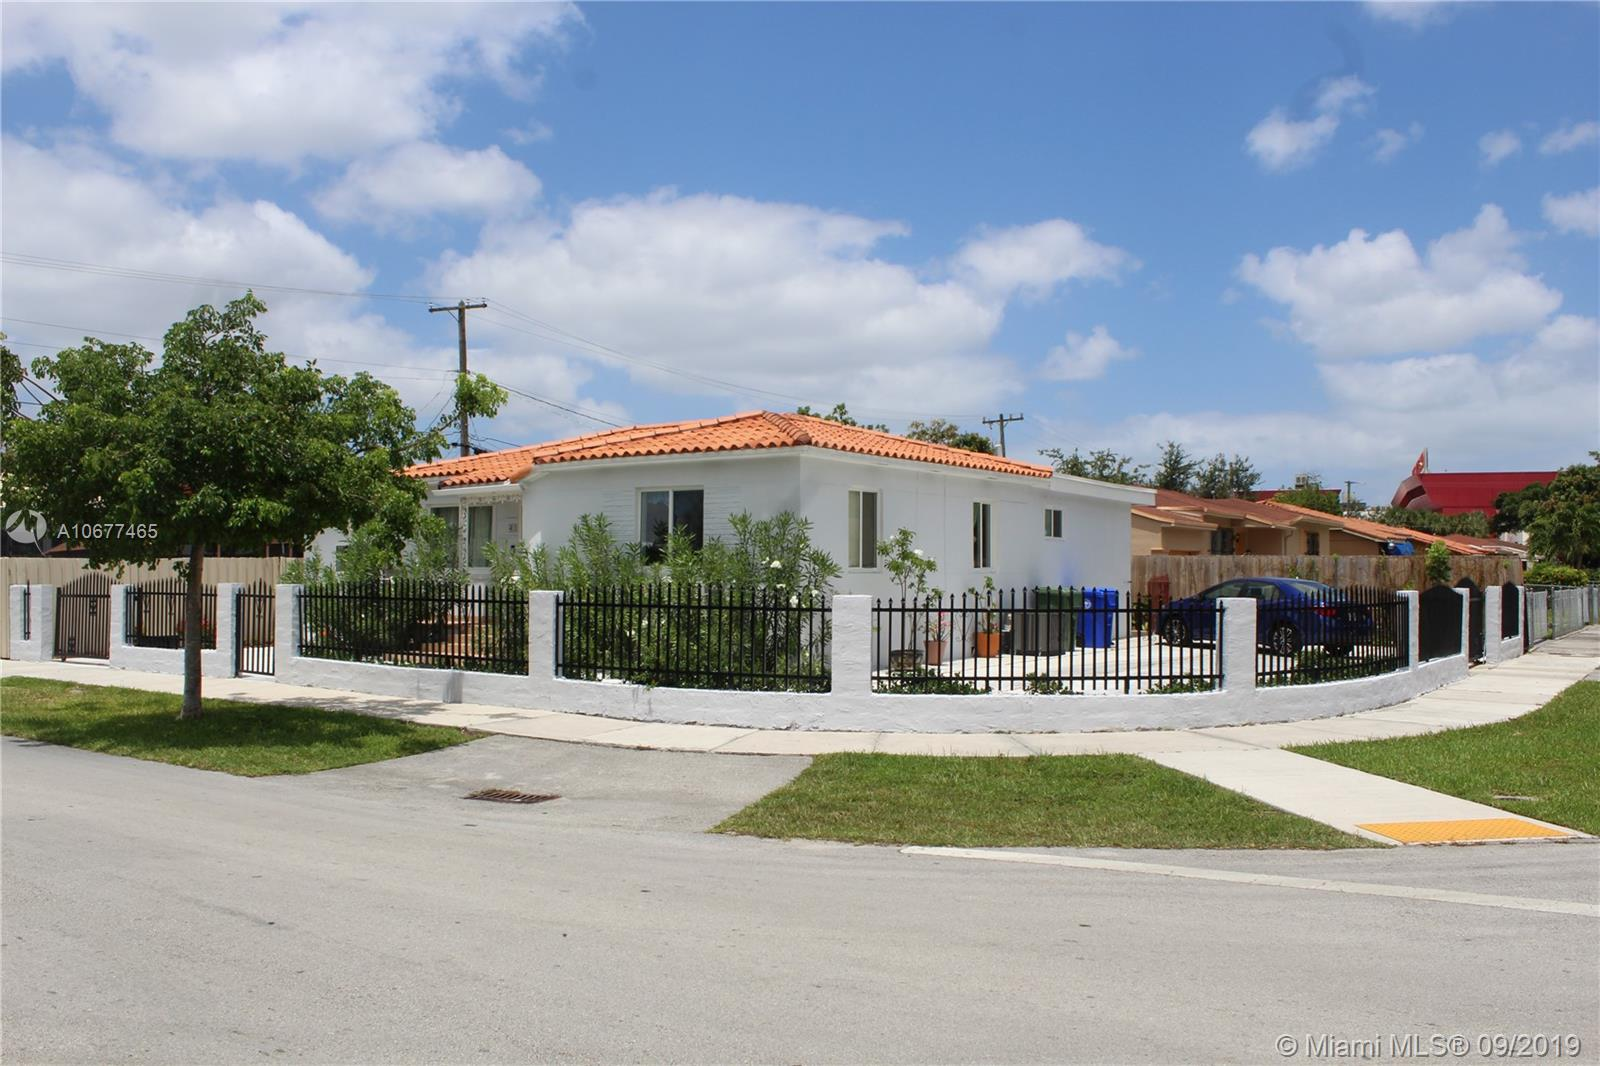 This house is in A great location. Close to the airport, Brickell, and Downtown Miami. Great property 4 Bedroom/3 Bathroom home. Originally a 3/2 they have added a 1/1 with a full bathroom in the home. Has had over 50k in renovations including impact windows.